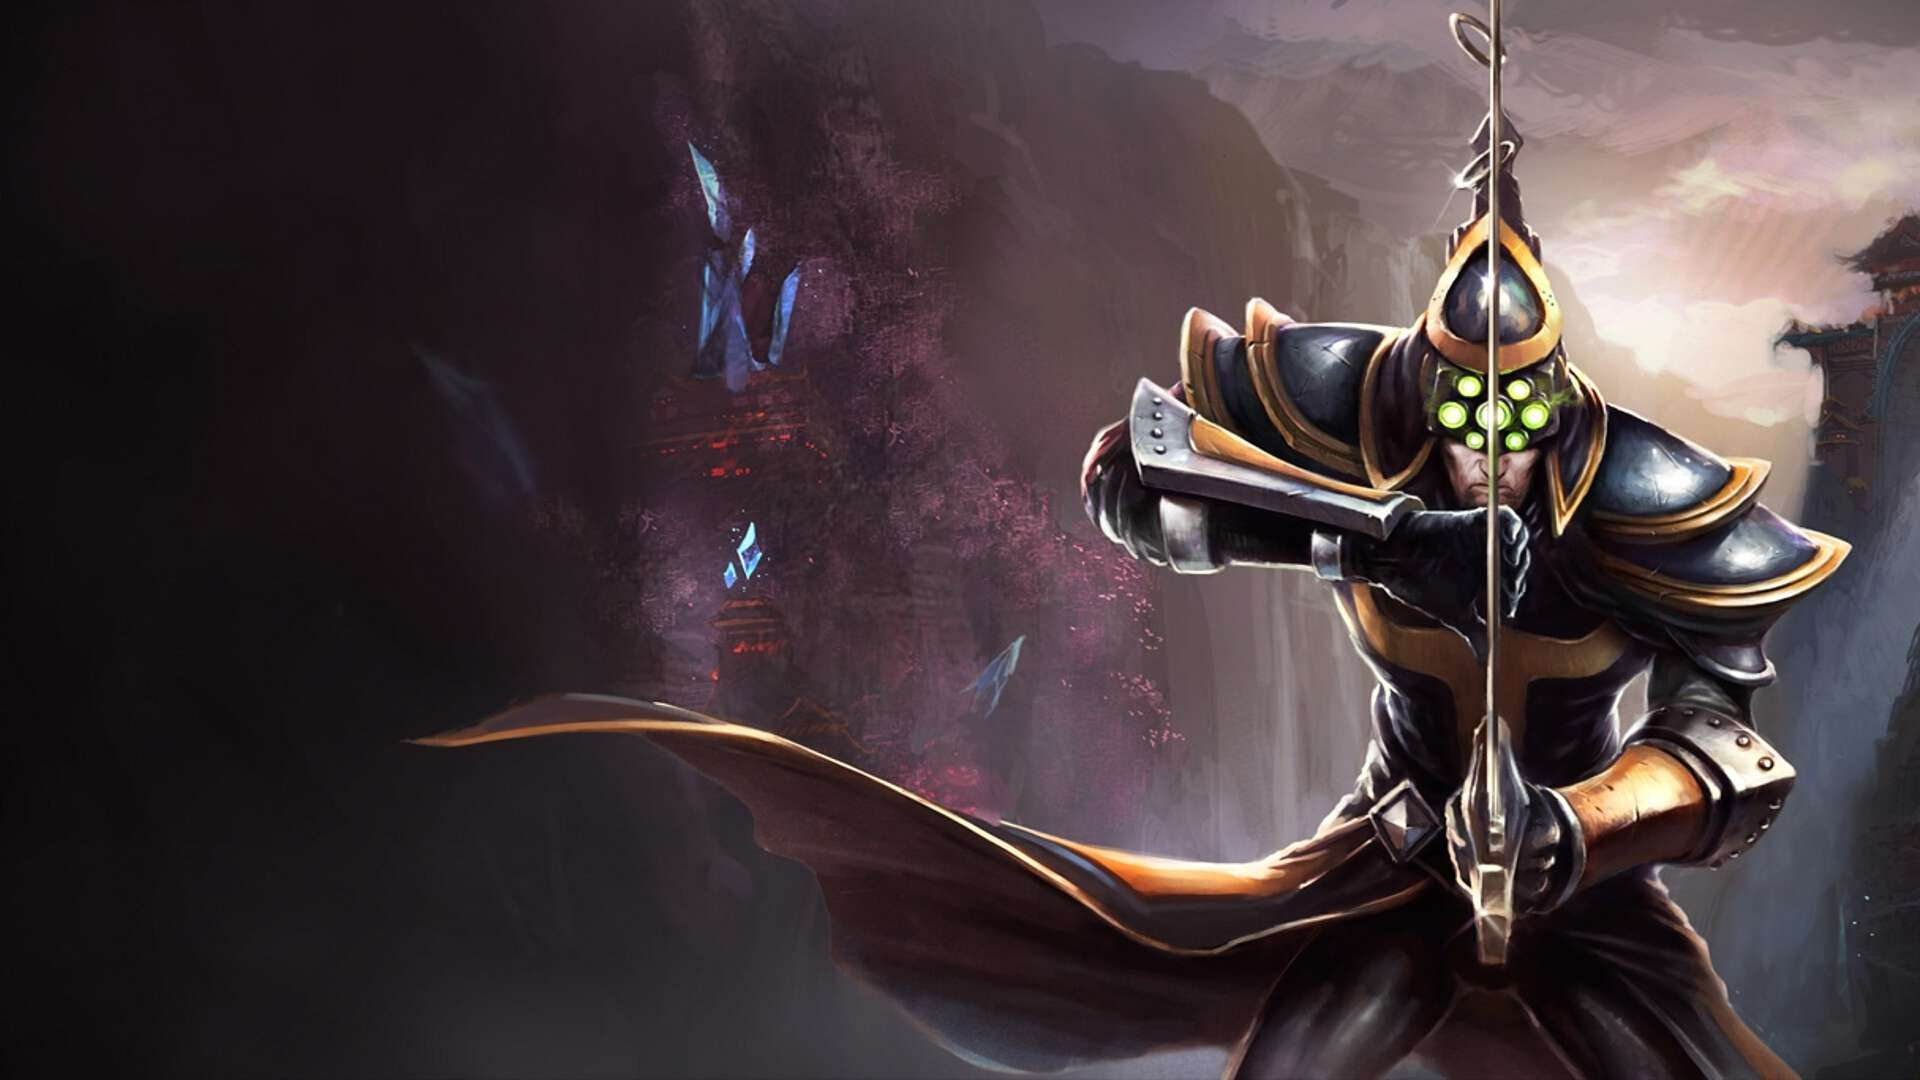 League of Legends Wallpaper 073